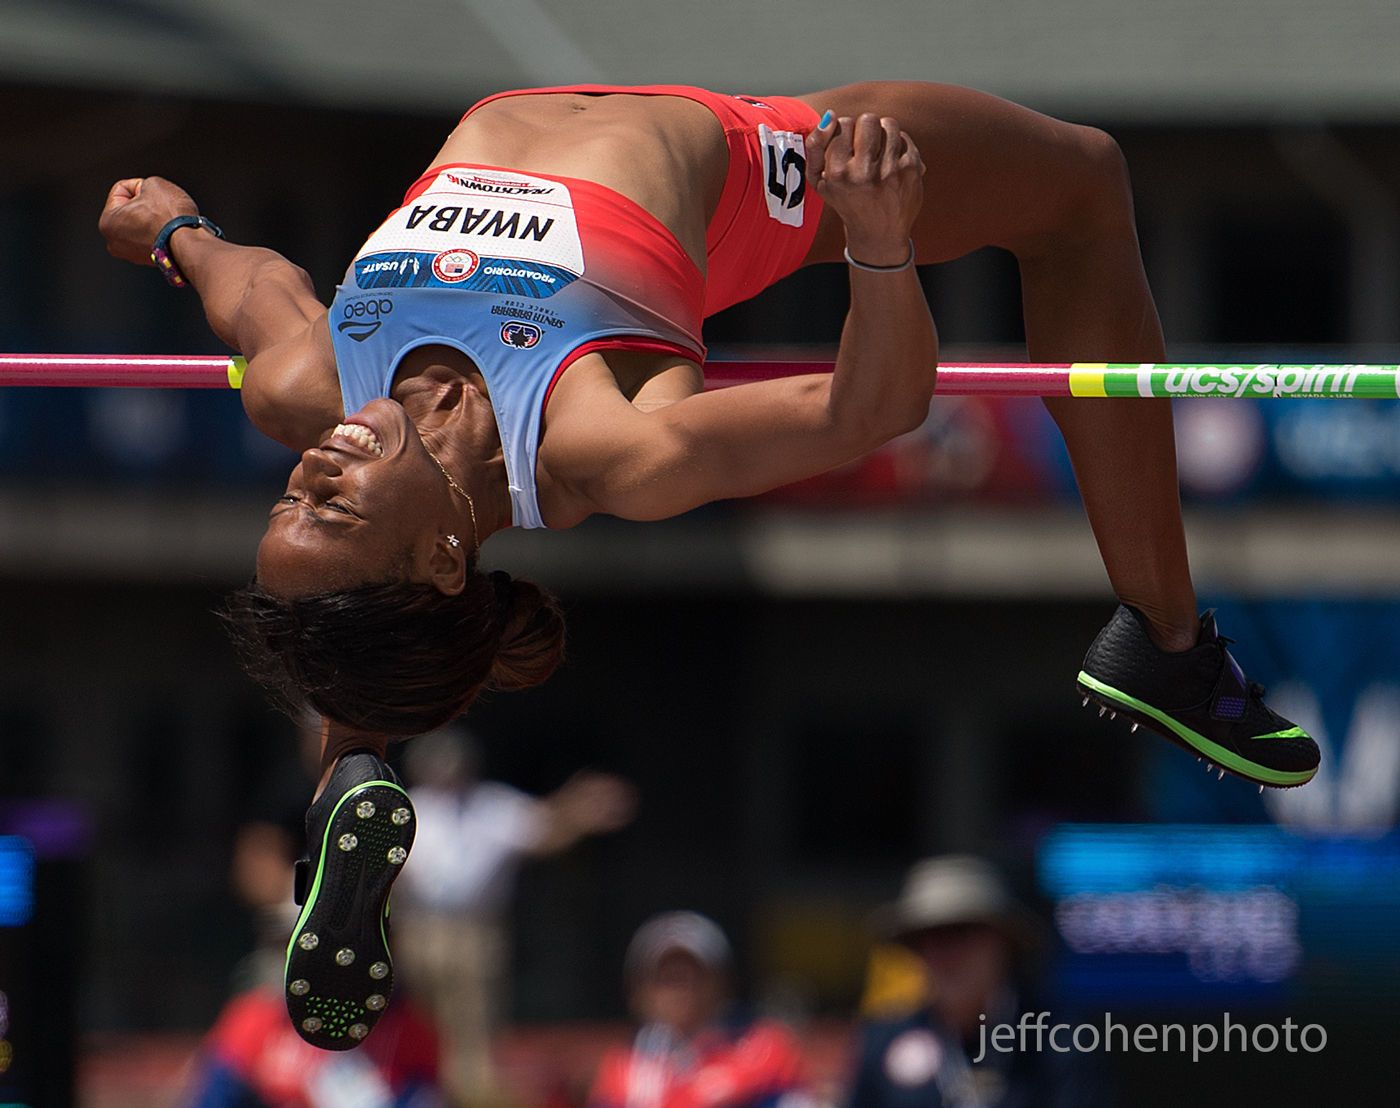 1r2016_oly_trials_day_8_nwaba_hjh_jeff_cohen_photo_25084_2_web.jpg